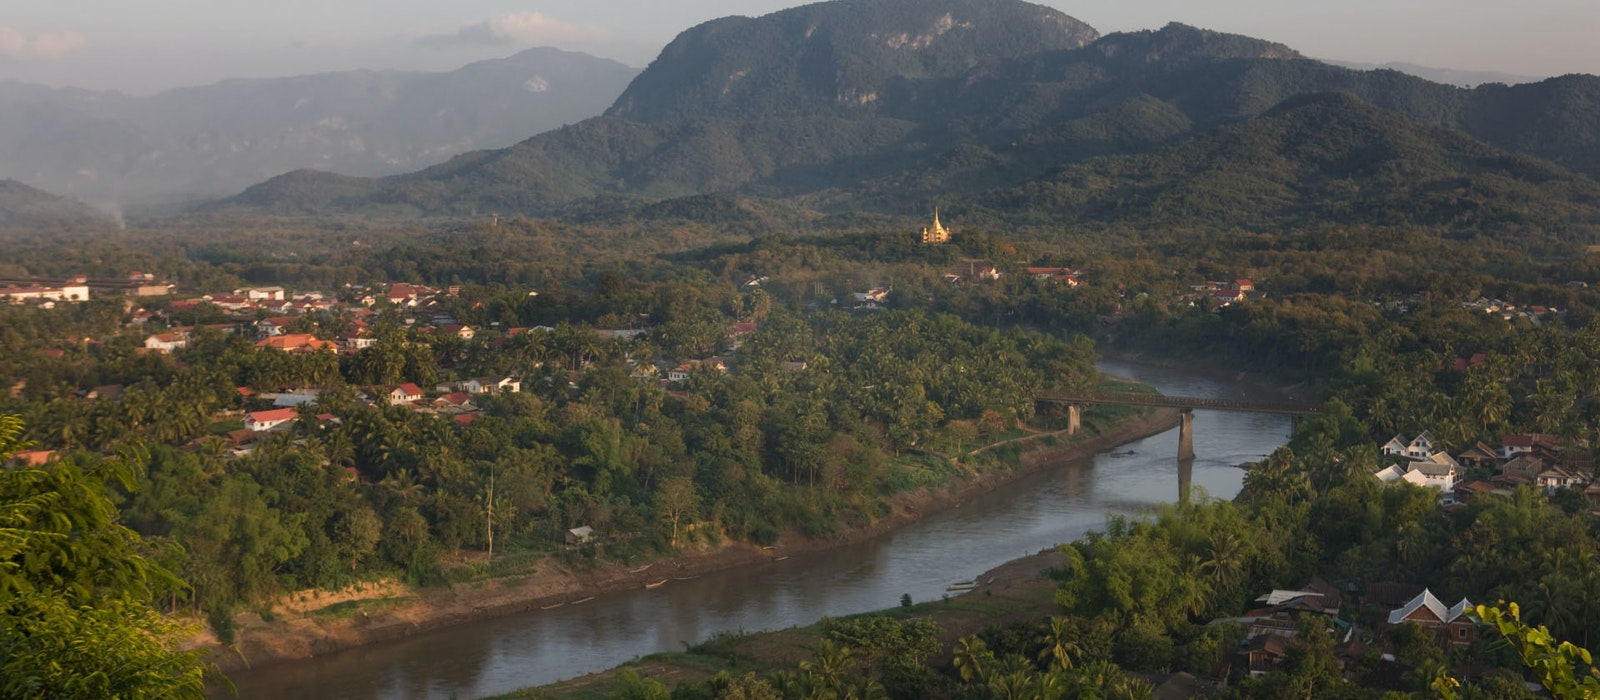 Life in Luang Prabang moves at a blissfully unhurried pace.